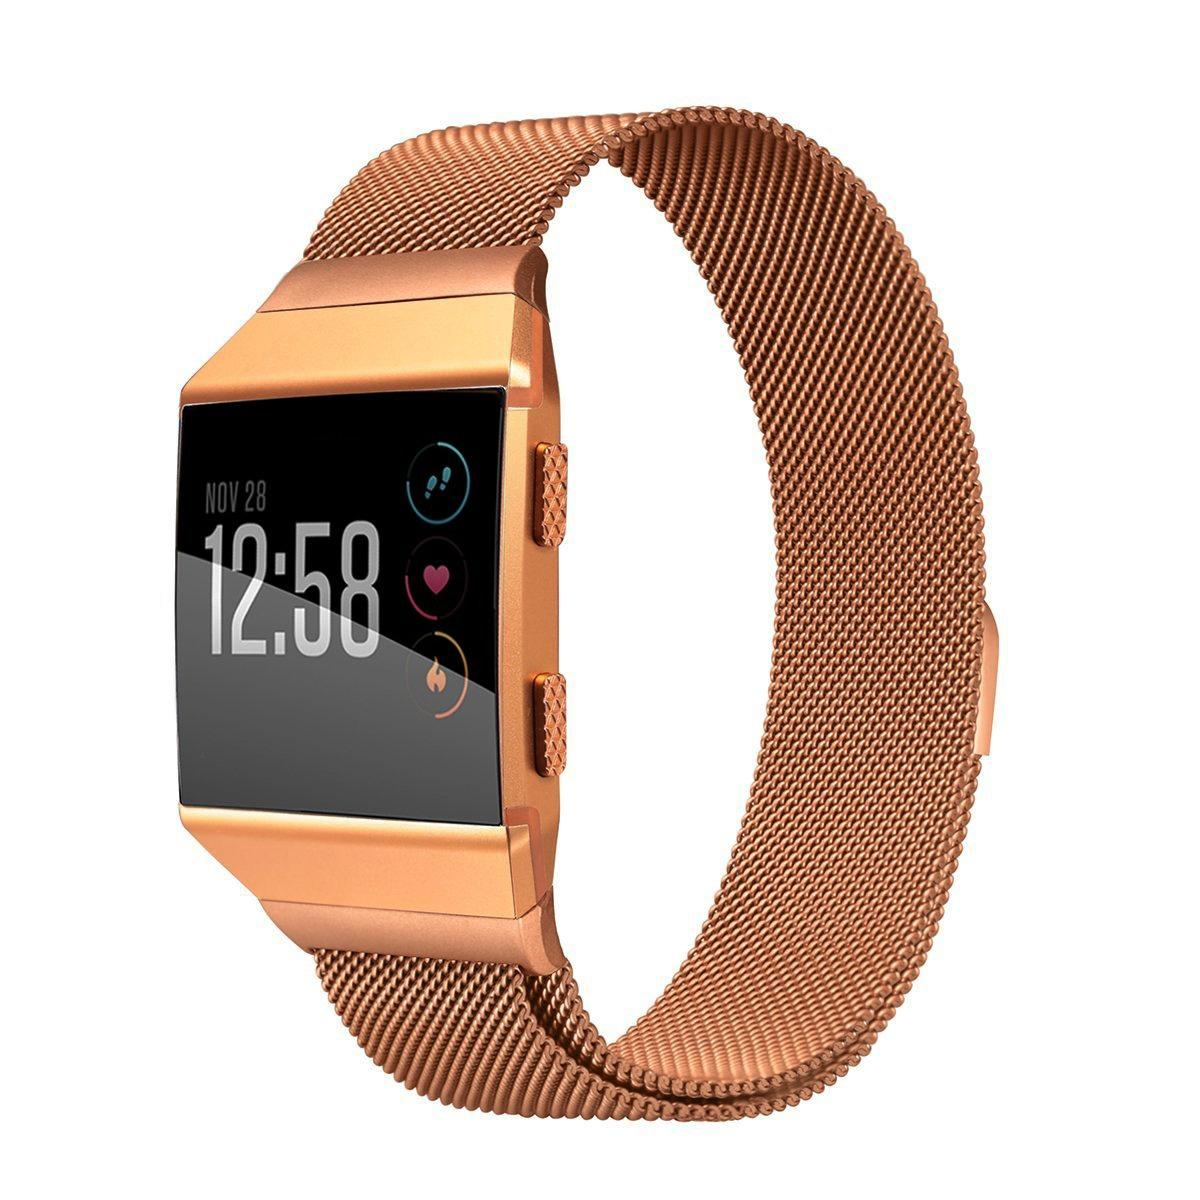 Sale Haotop For Fitbit Ionic Bands Replacement Milanese Loop Stainless Steel Metal Bracelet Strap For Fitbit Ionic Smartwatch Small Large Size Intl Haotop Branded